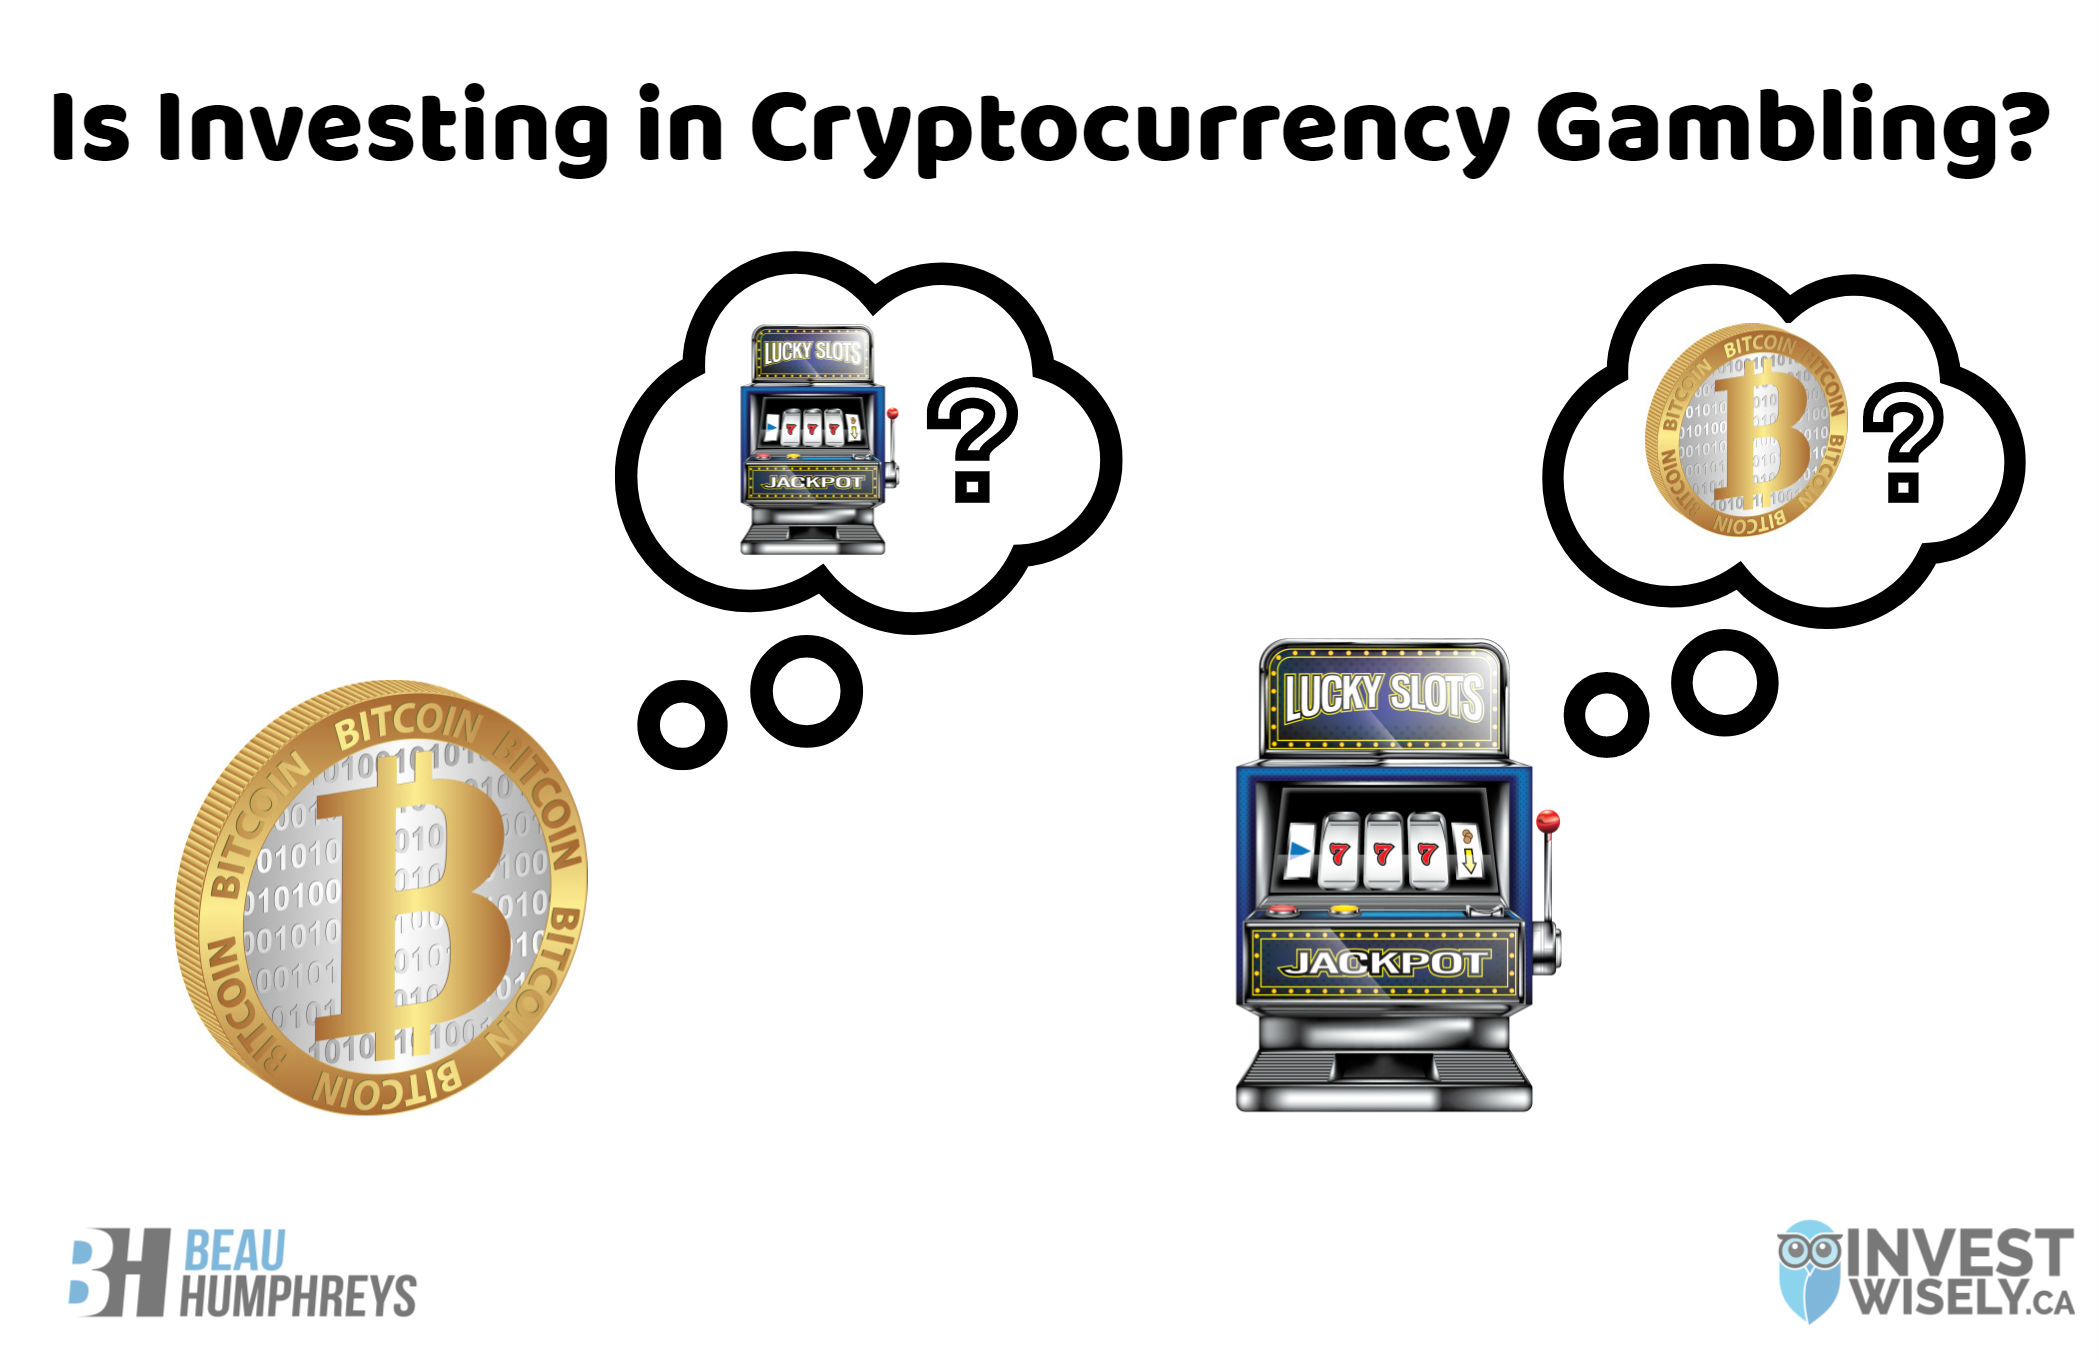 Is Investing in Cryptocurrency Gambling?